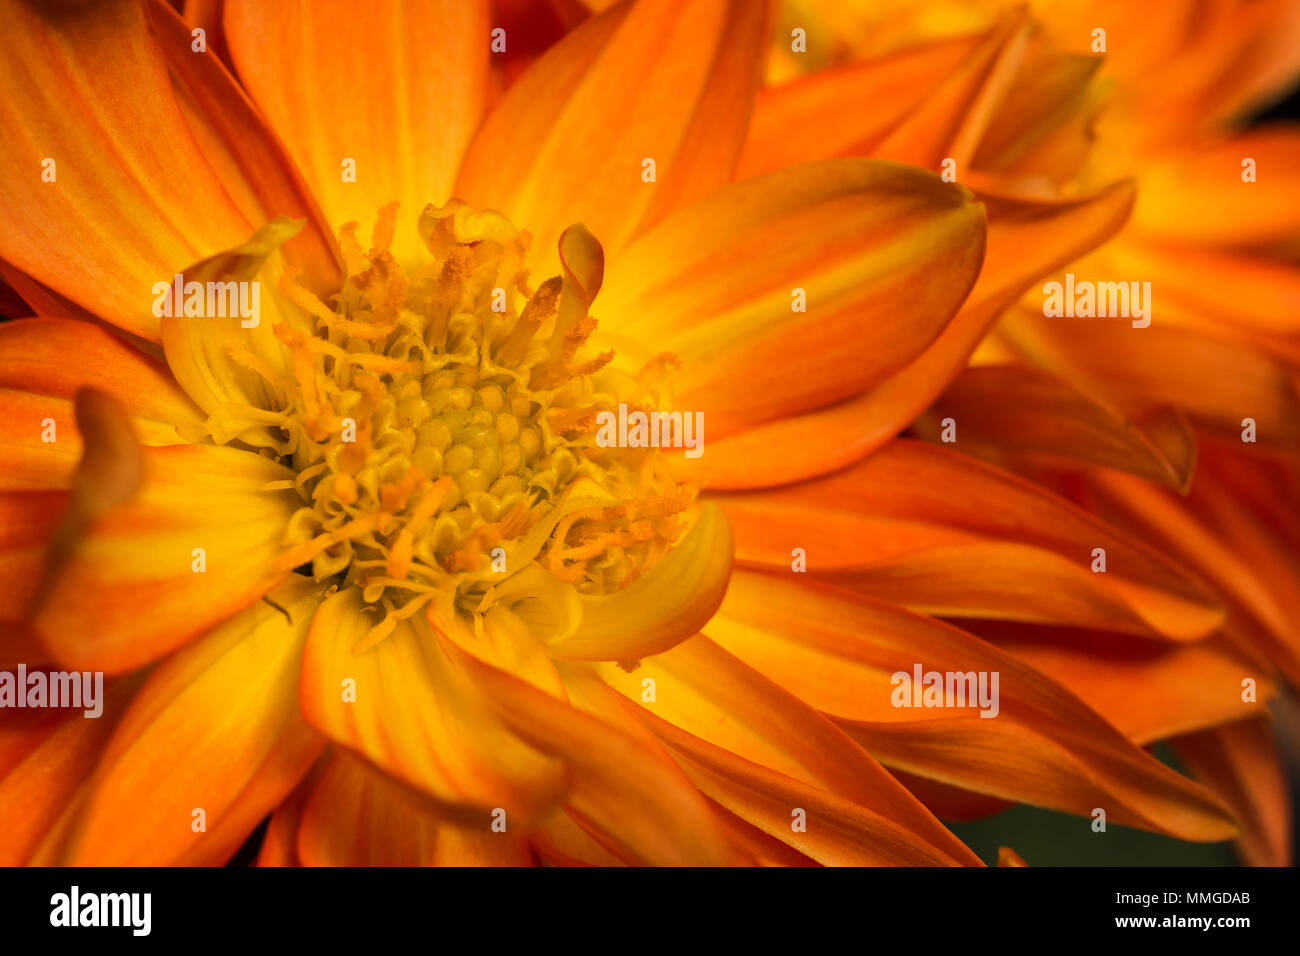 Close up view of common dahlia flower showing vibrant and vivid colors and flower plants - Stock Image